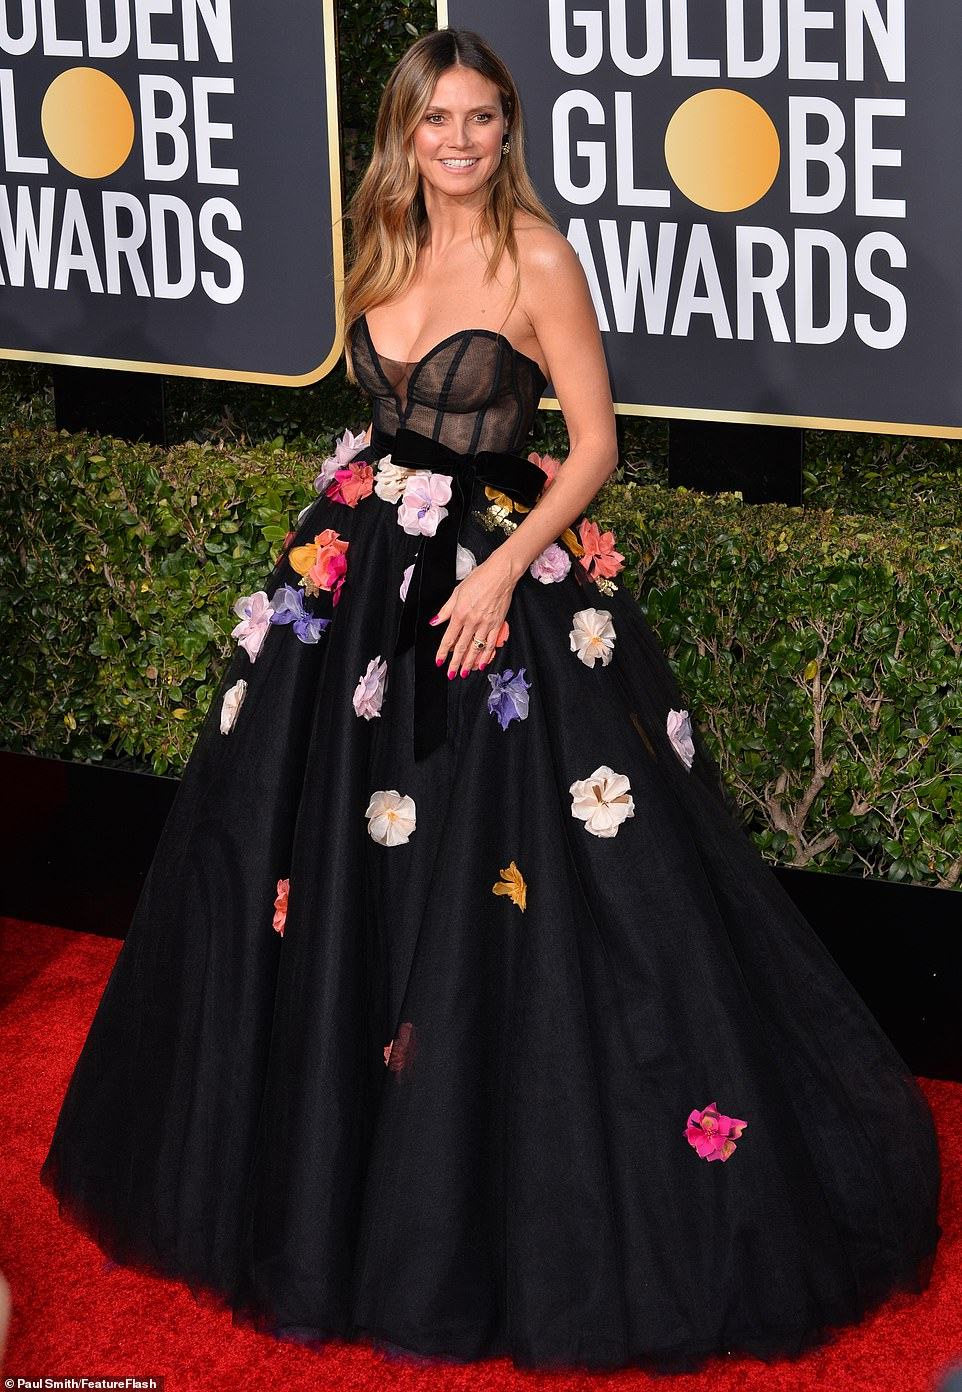 Heidi Klum Golden Globes Dress